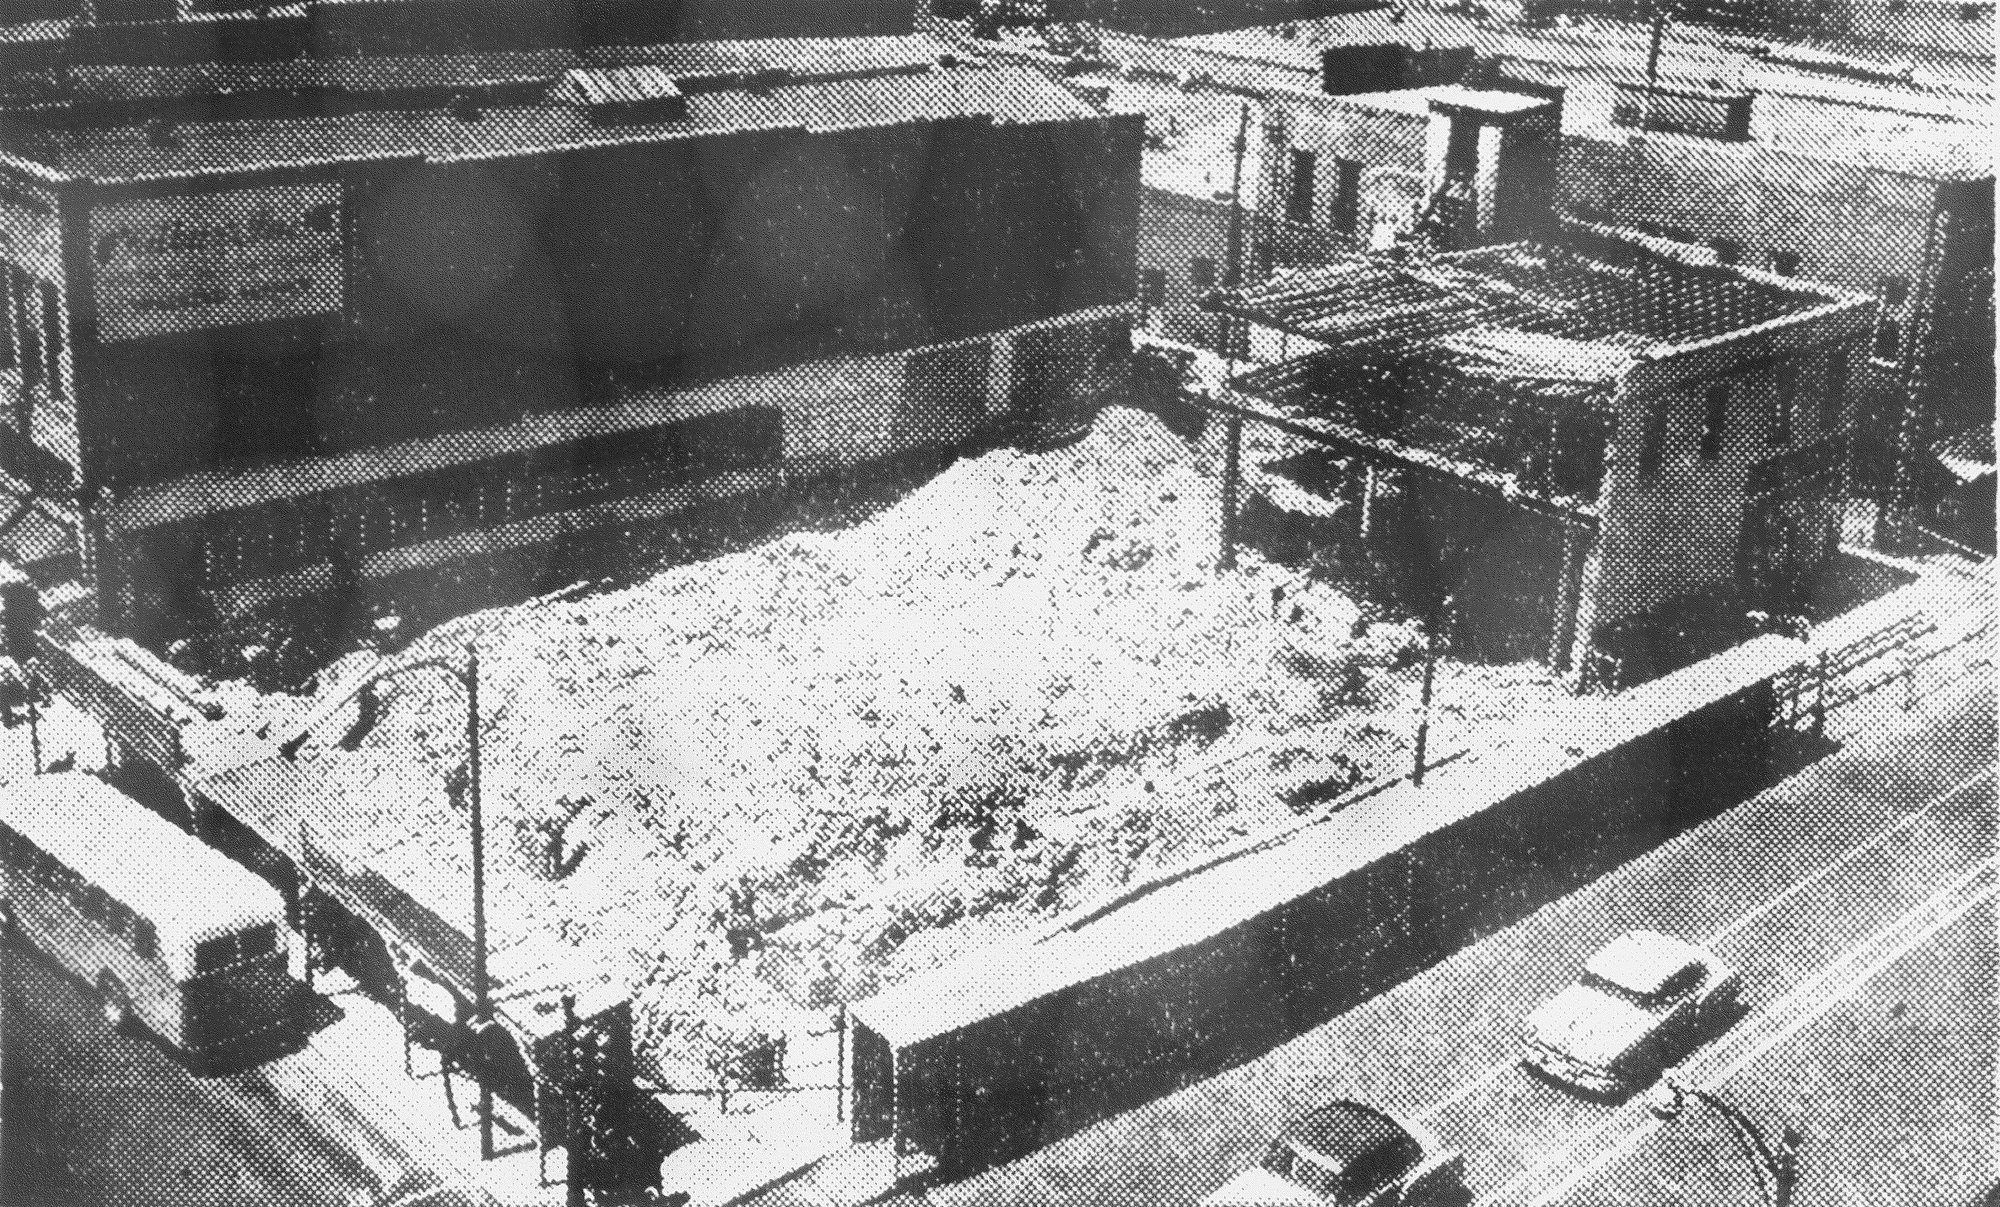 A new, modern retail store was to be built on this site, covered with rubble from wrecking the former McLellan's Store, Fishel's Jewelry Store and Sibert's Drug Store. The two-story building that was scheduled to be completed in early fall 1953 was to be of brick, steel and concrete construction. The first floor was to be used for the retail business, and upstairs was to be for storage and offices. McLellan's was temporarily located at 146 S. Main St. while construction was in progress.